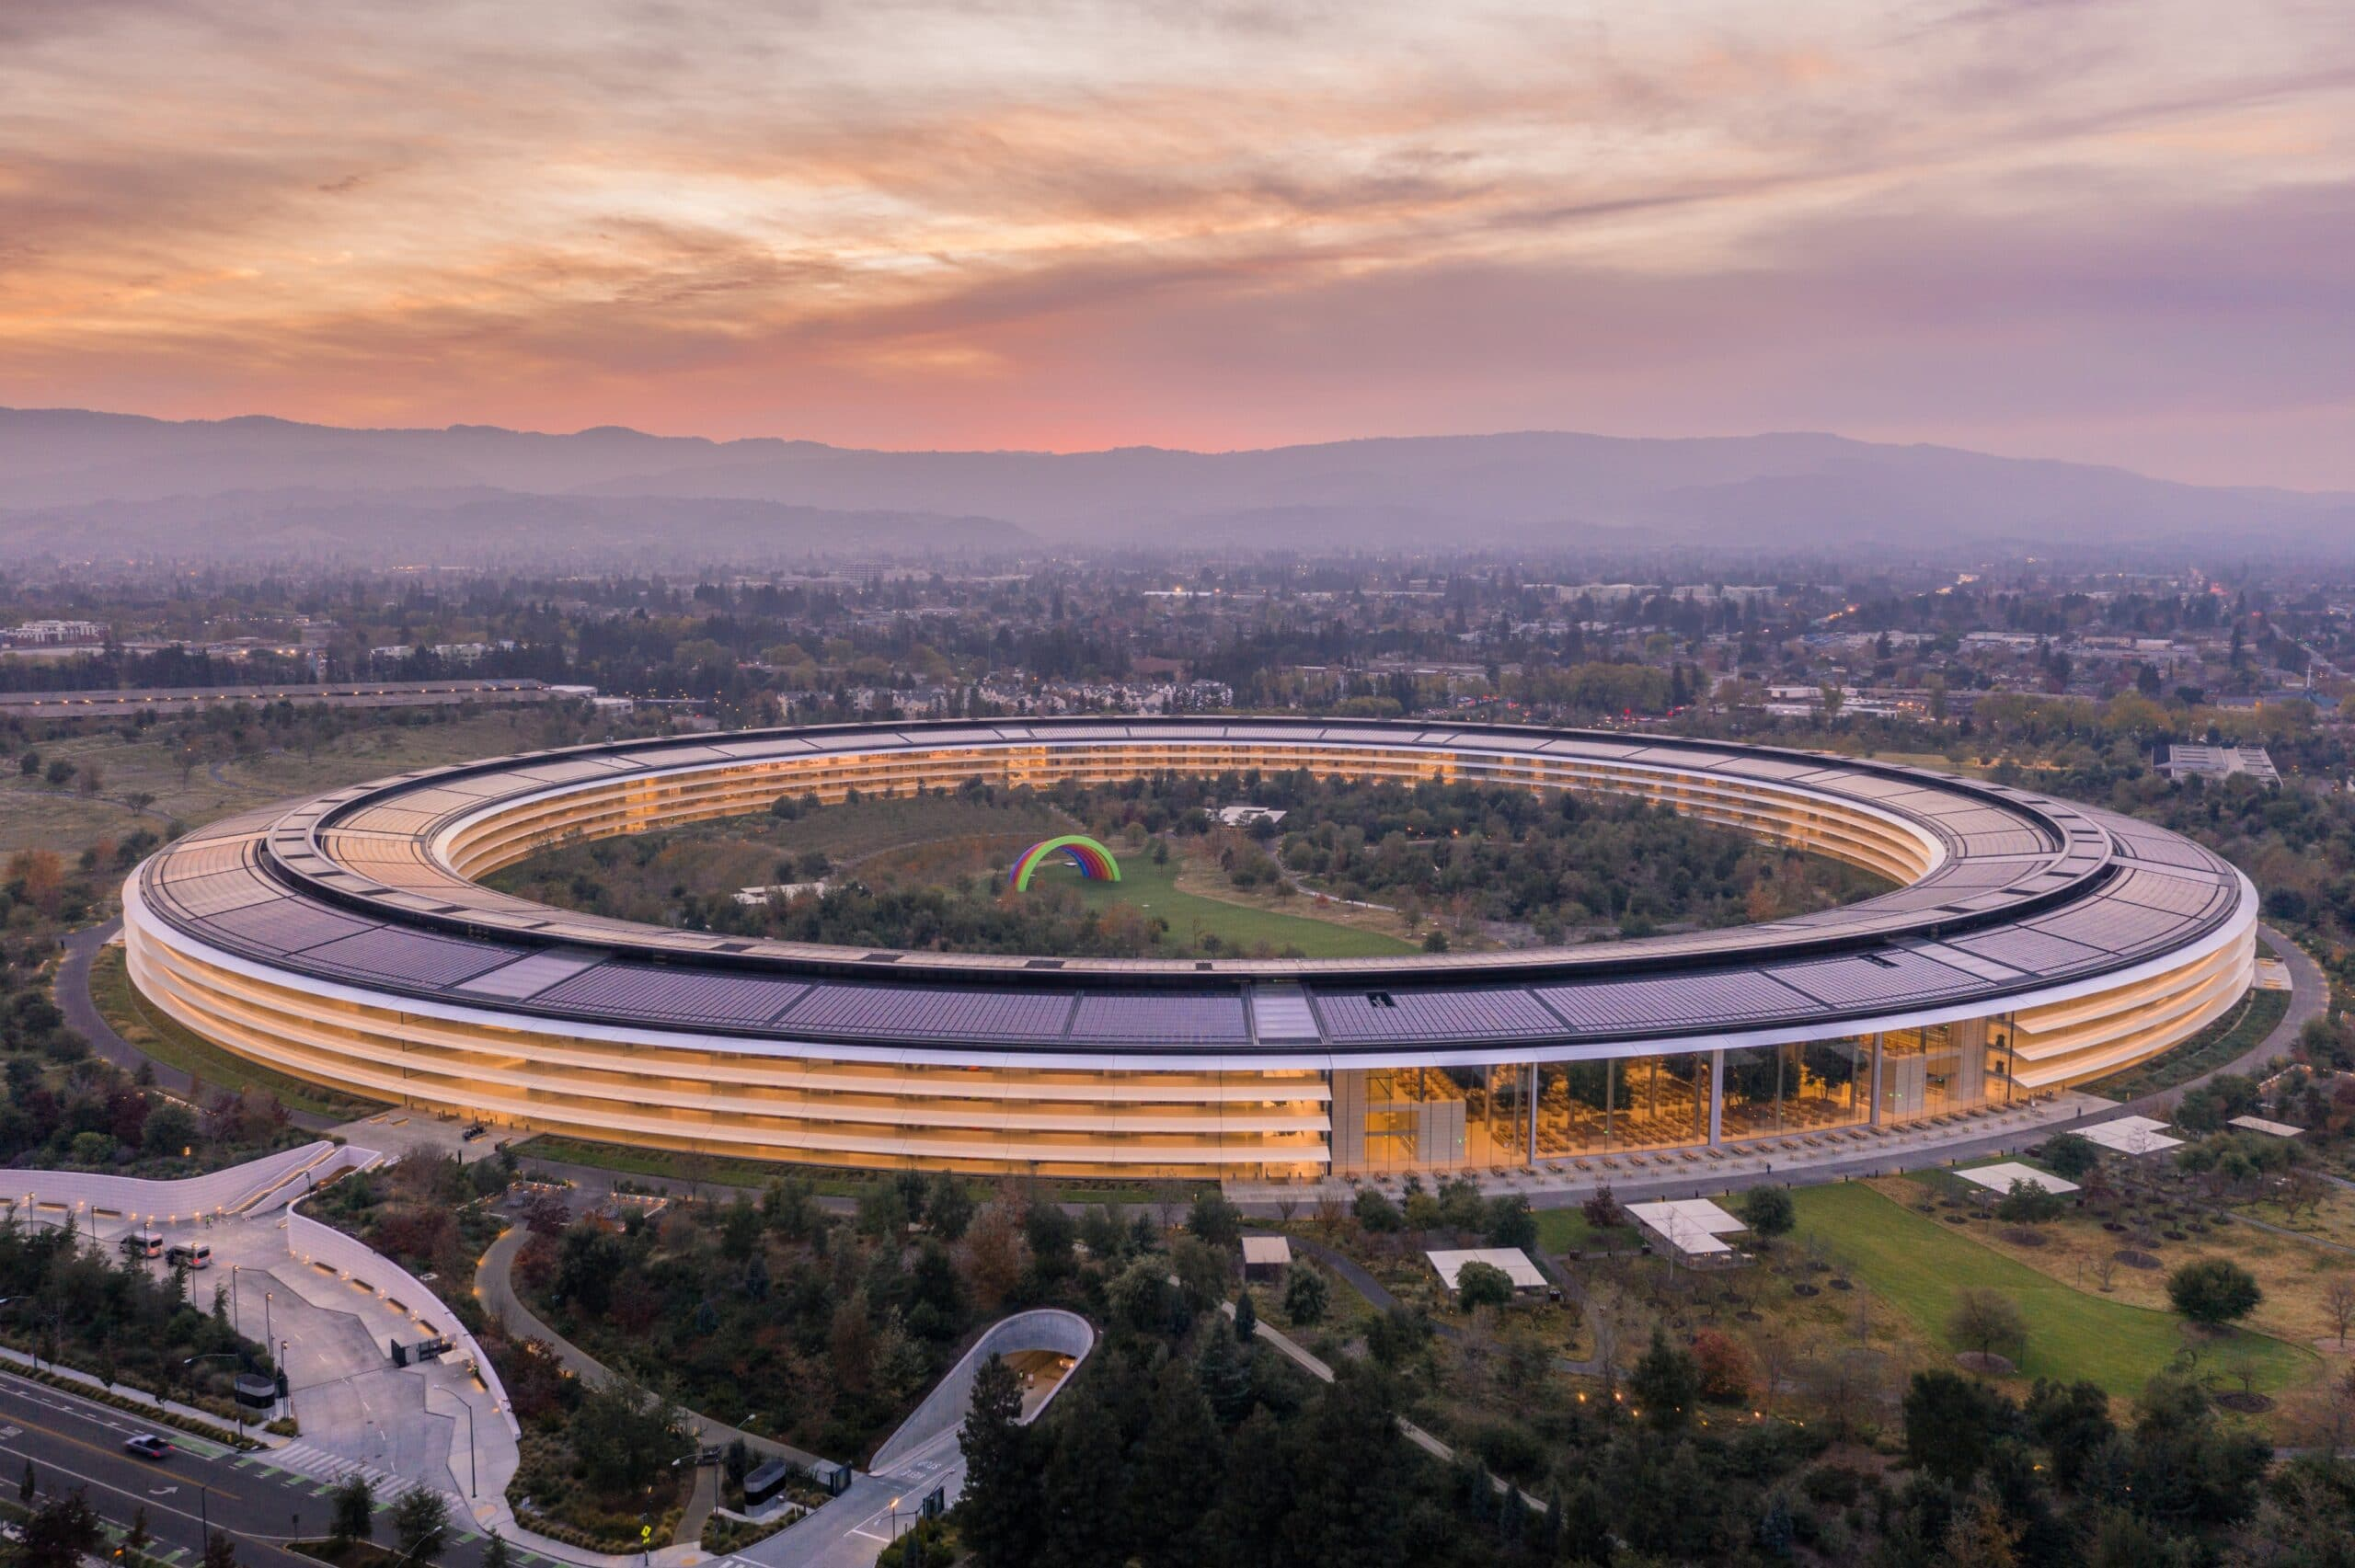 Apple Park visto do alto ao pôr do sol